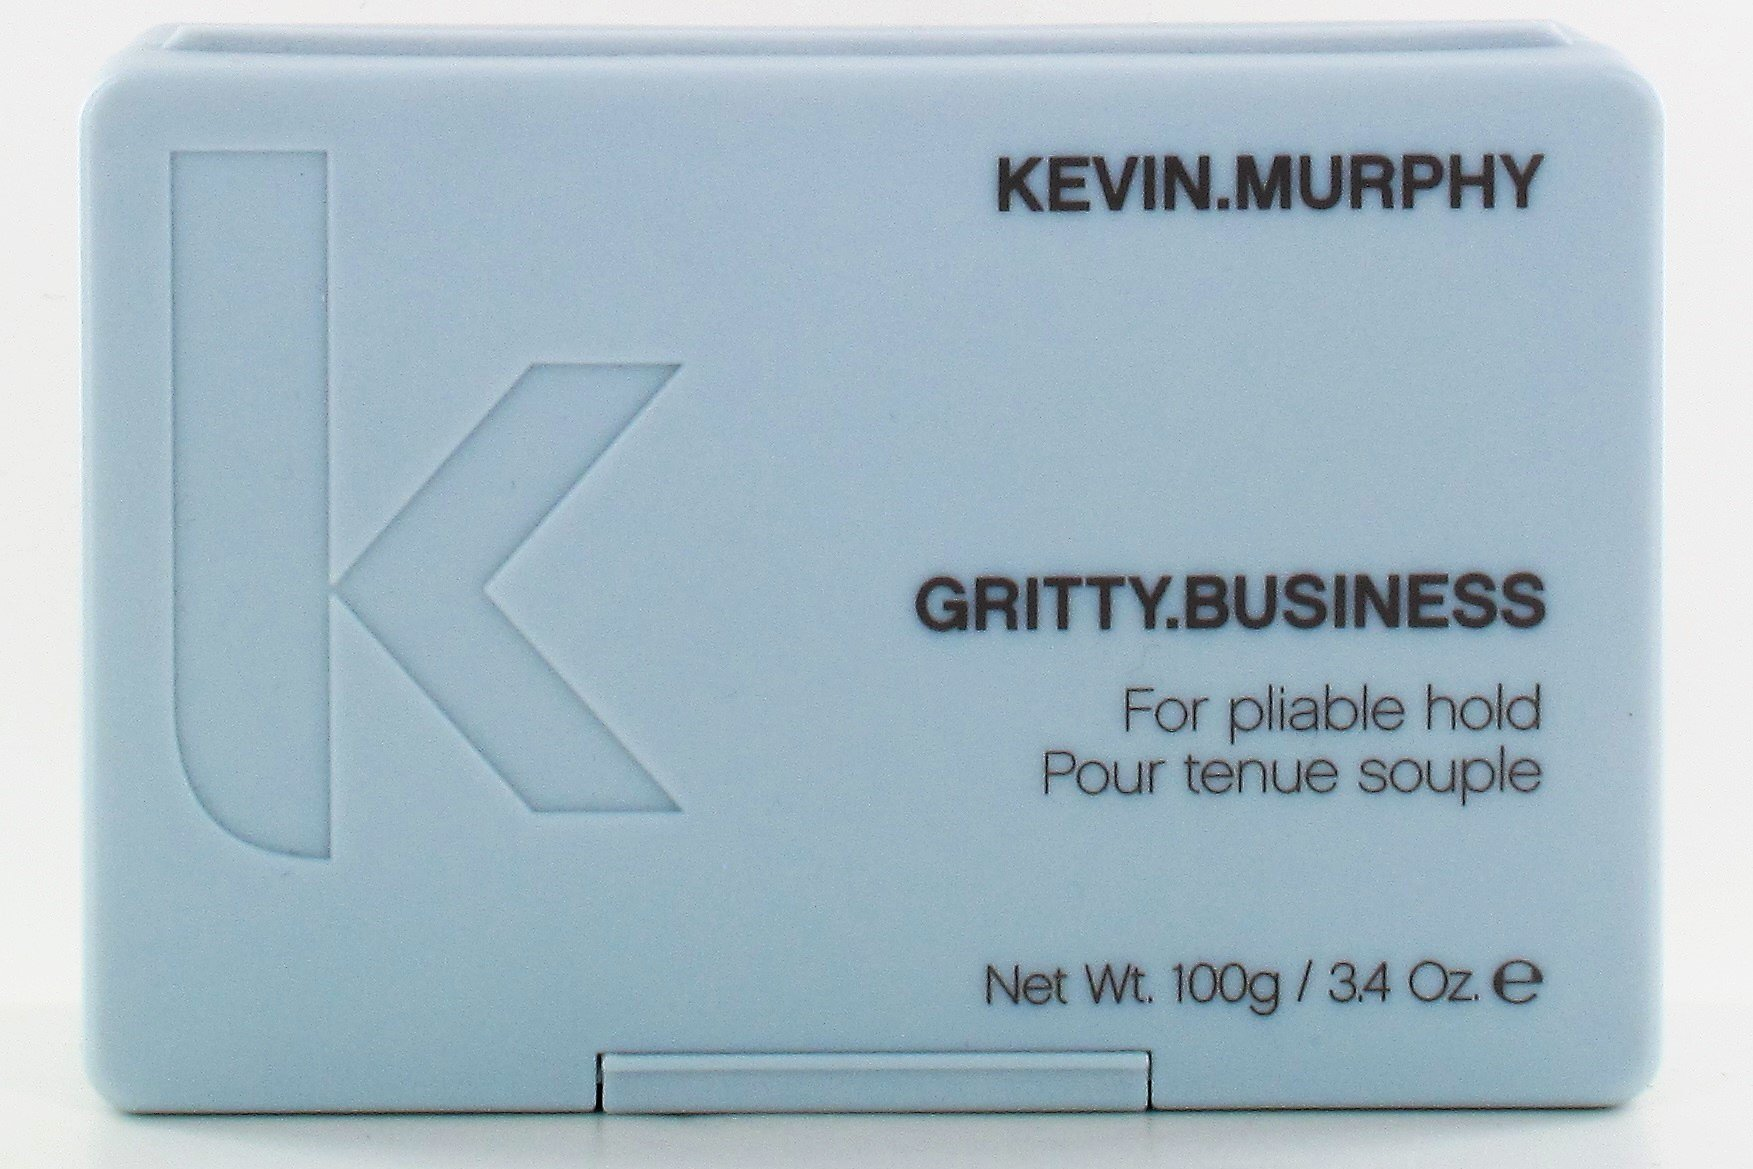 Kevin Murphy Gritty Business 3.4oz